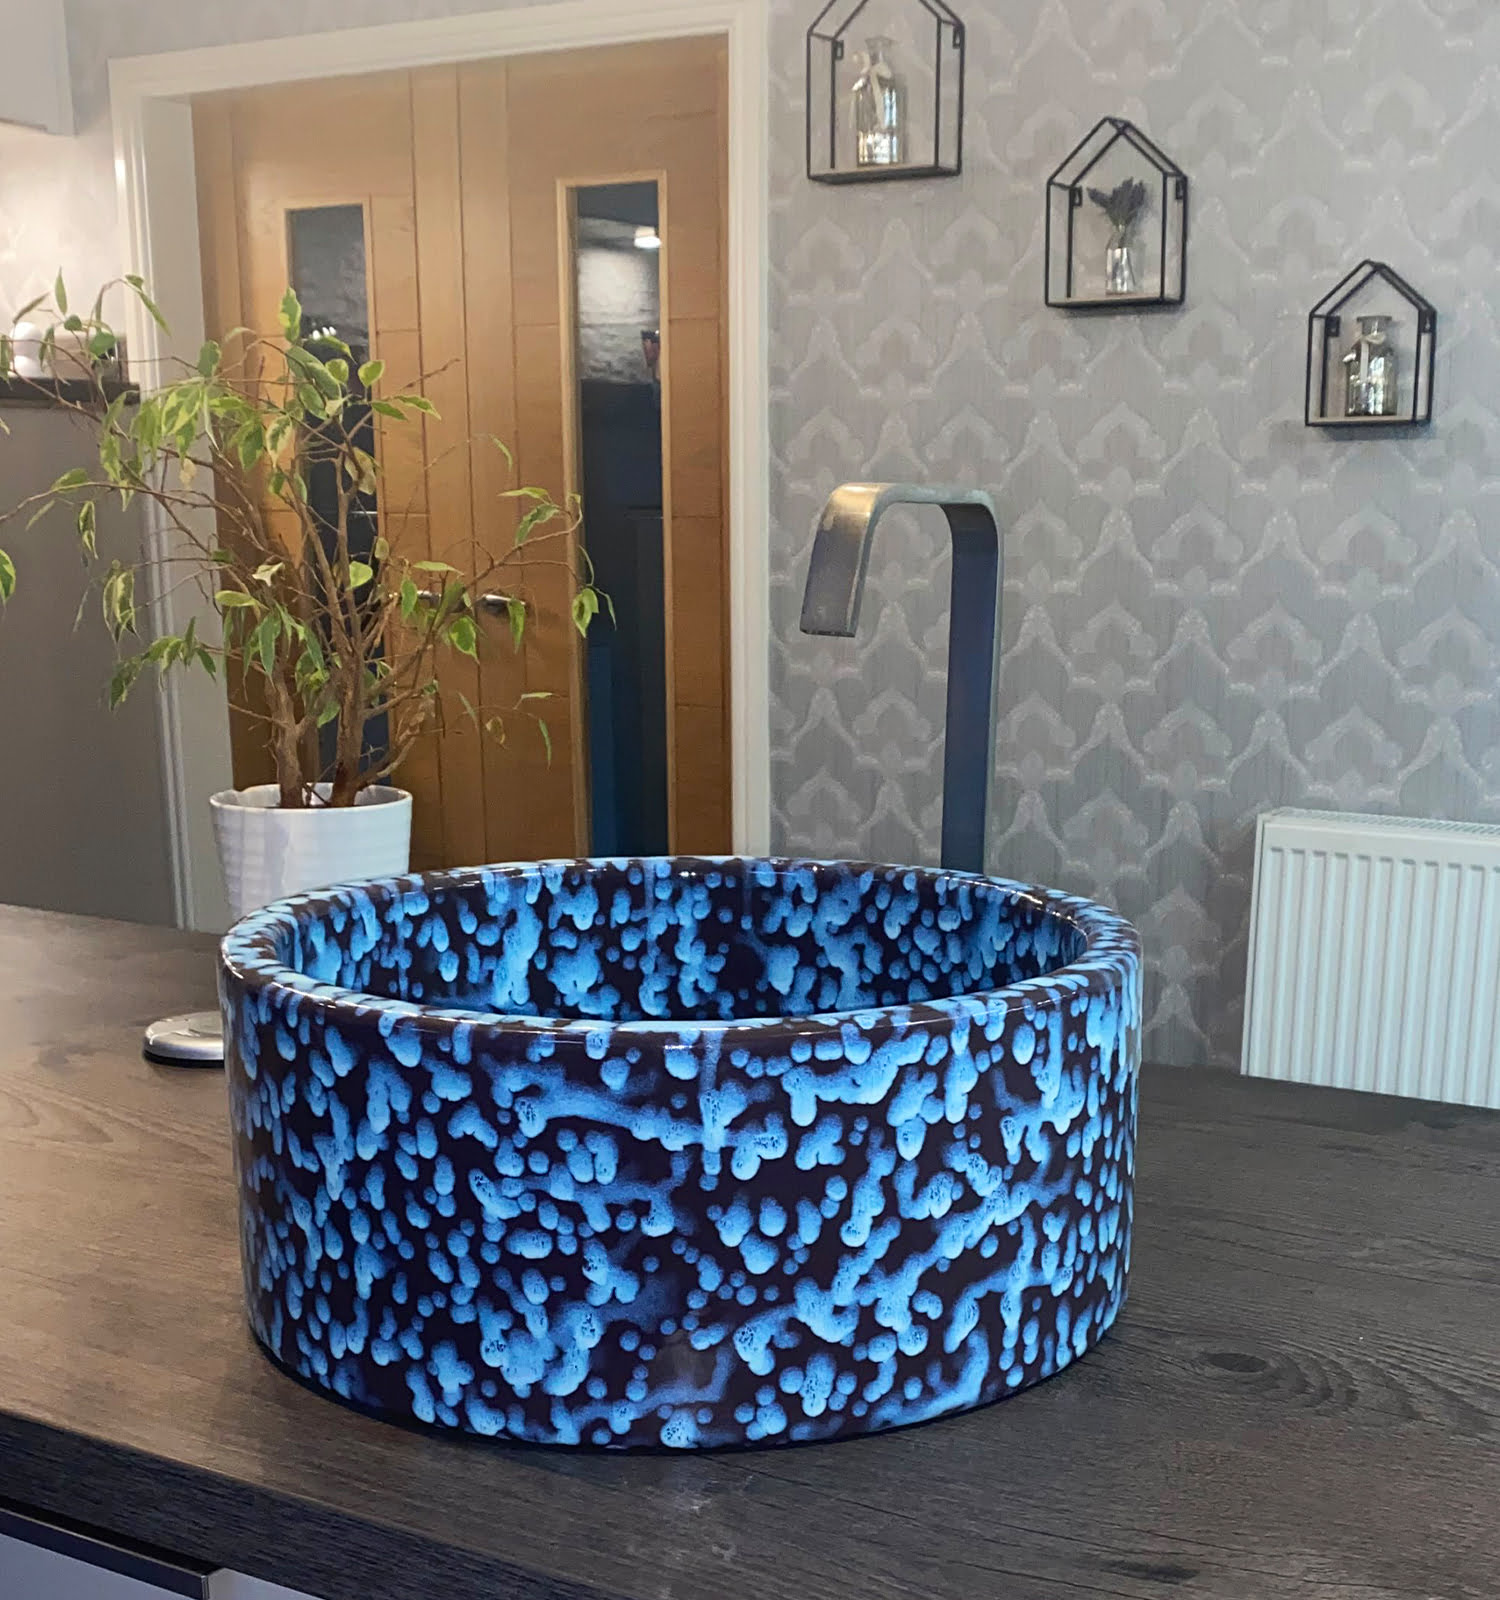 Electric blue and purple mottle kitchen sink, situated on a dark grey worktop.